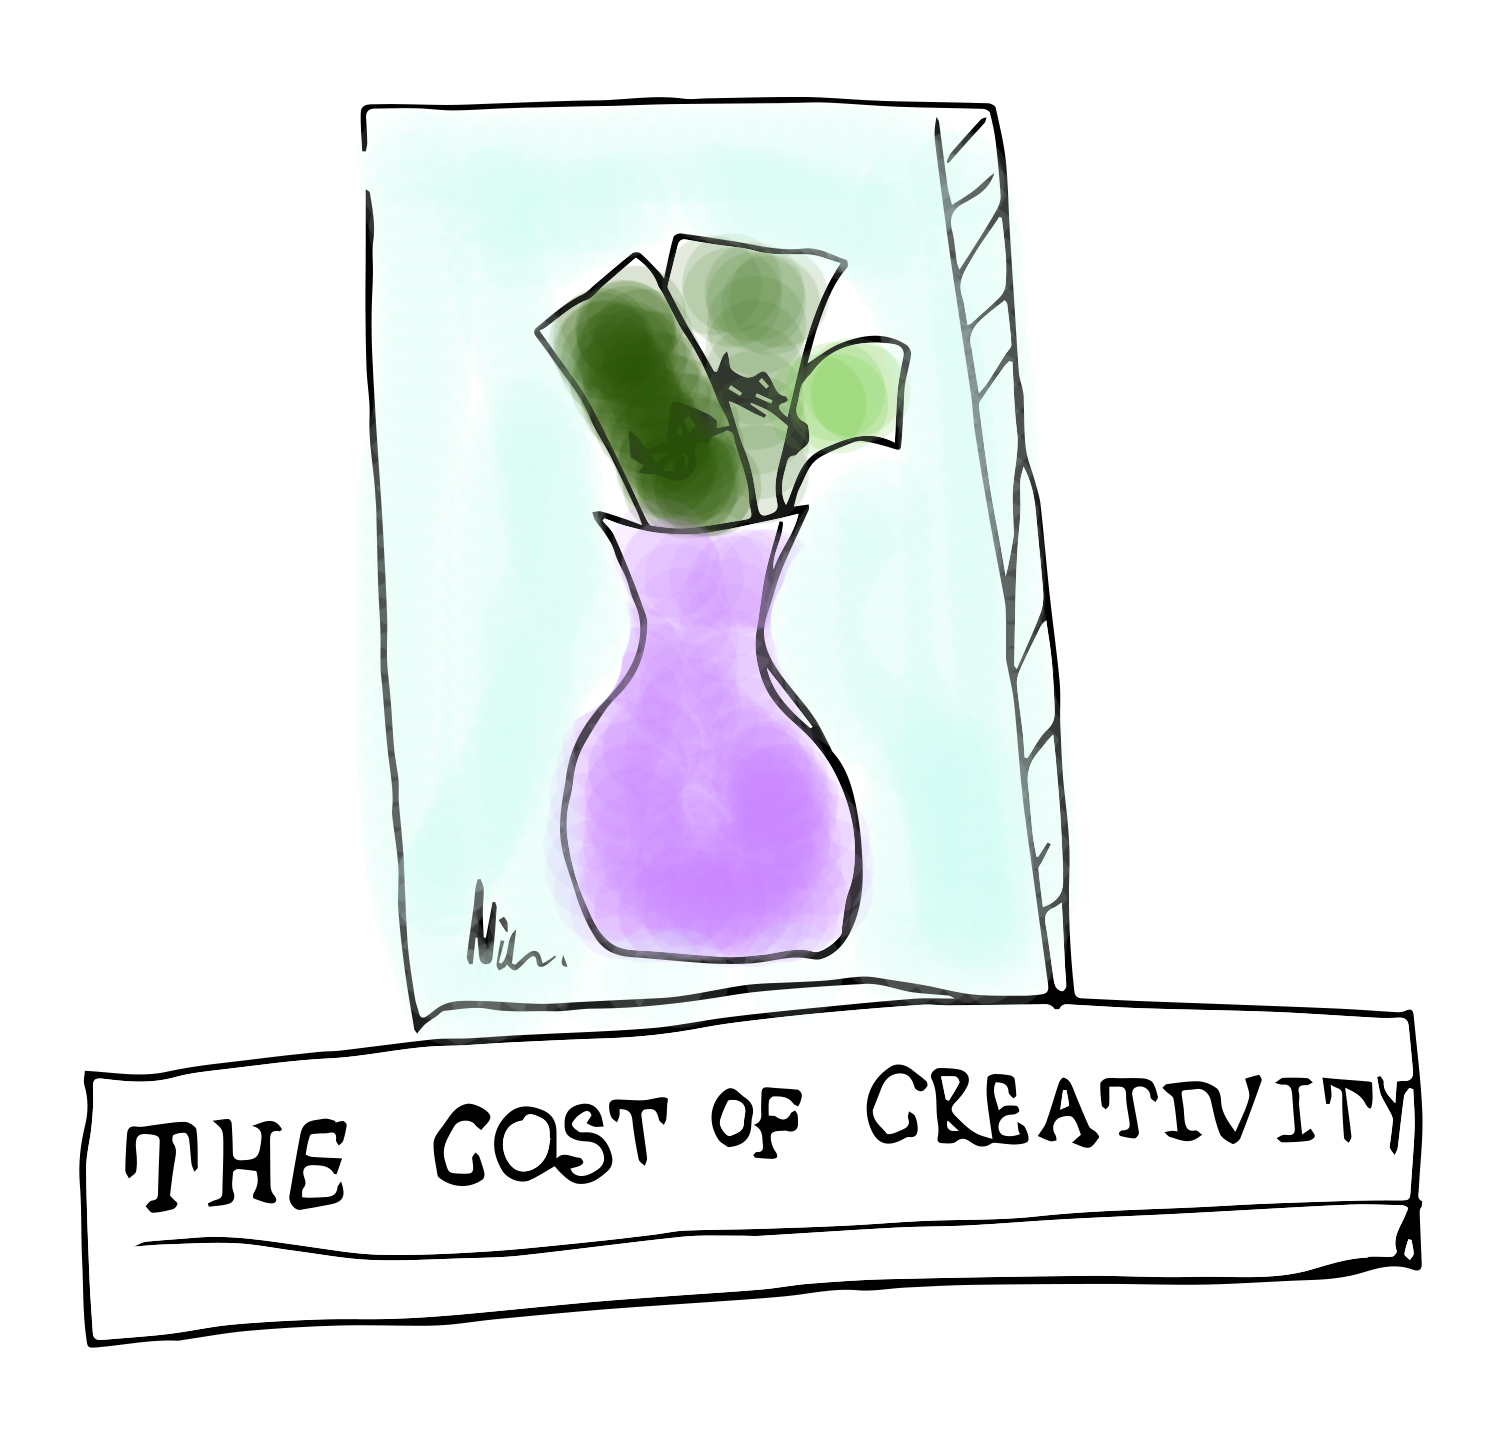 costofcreativity